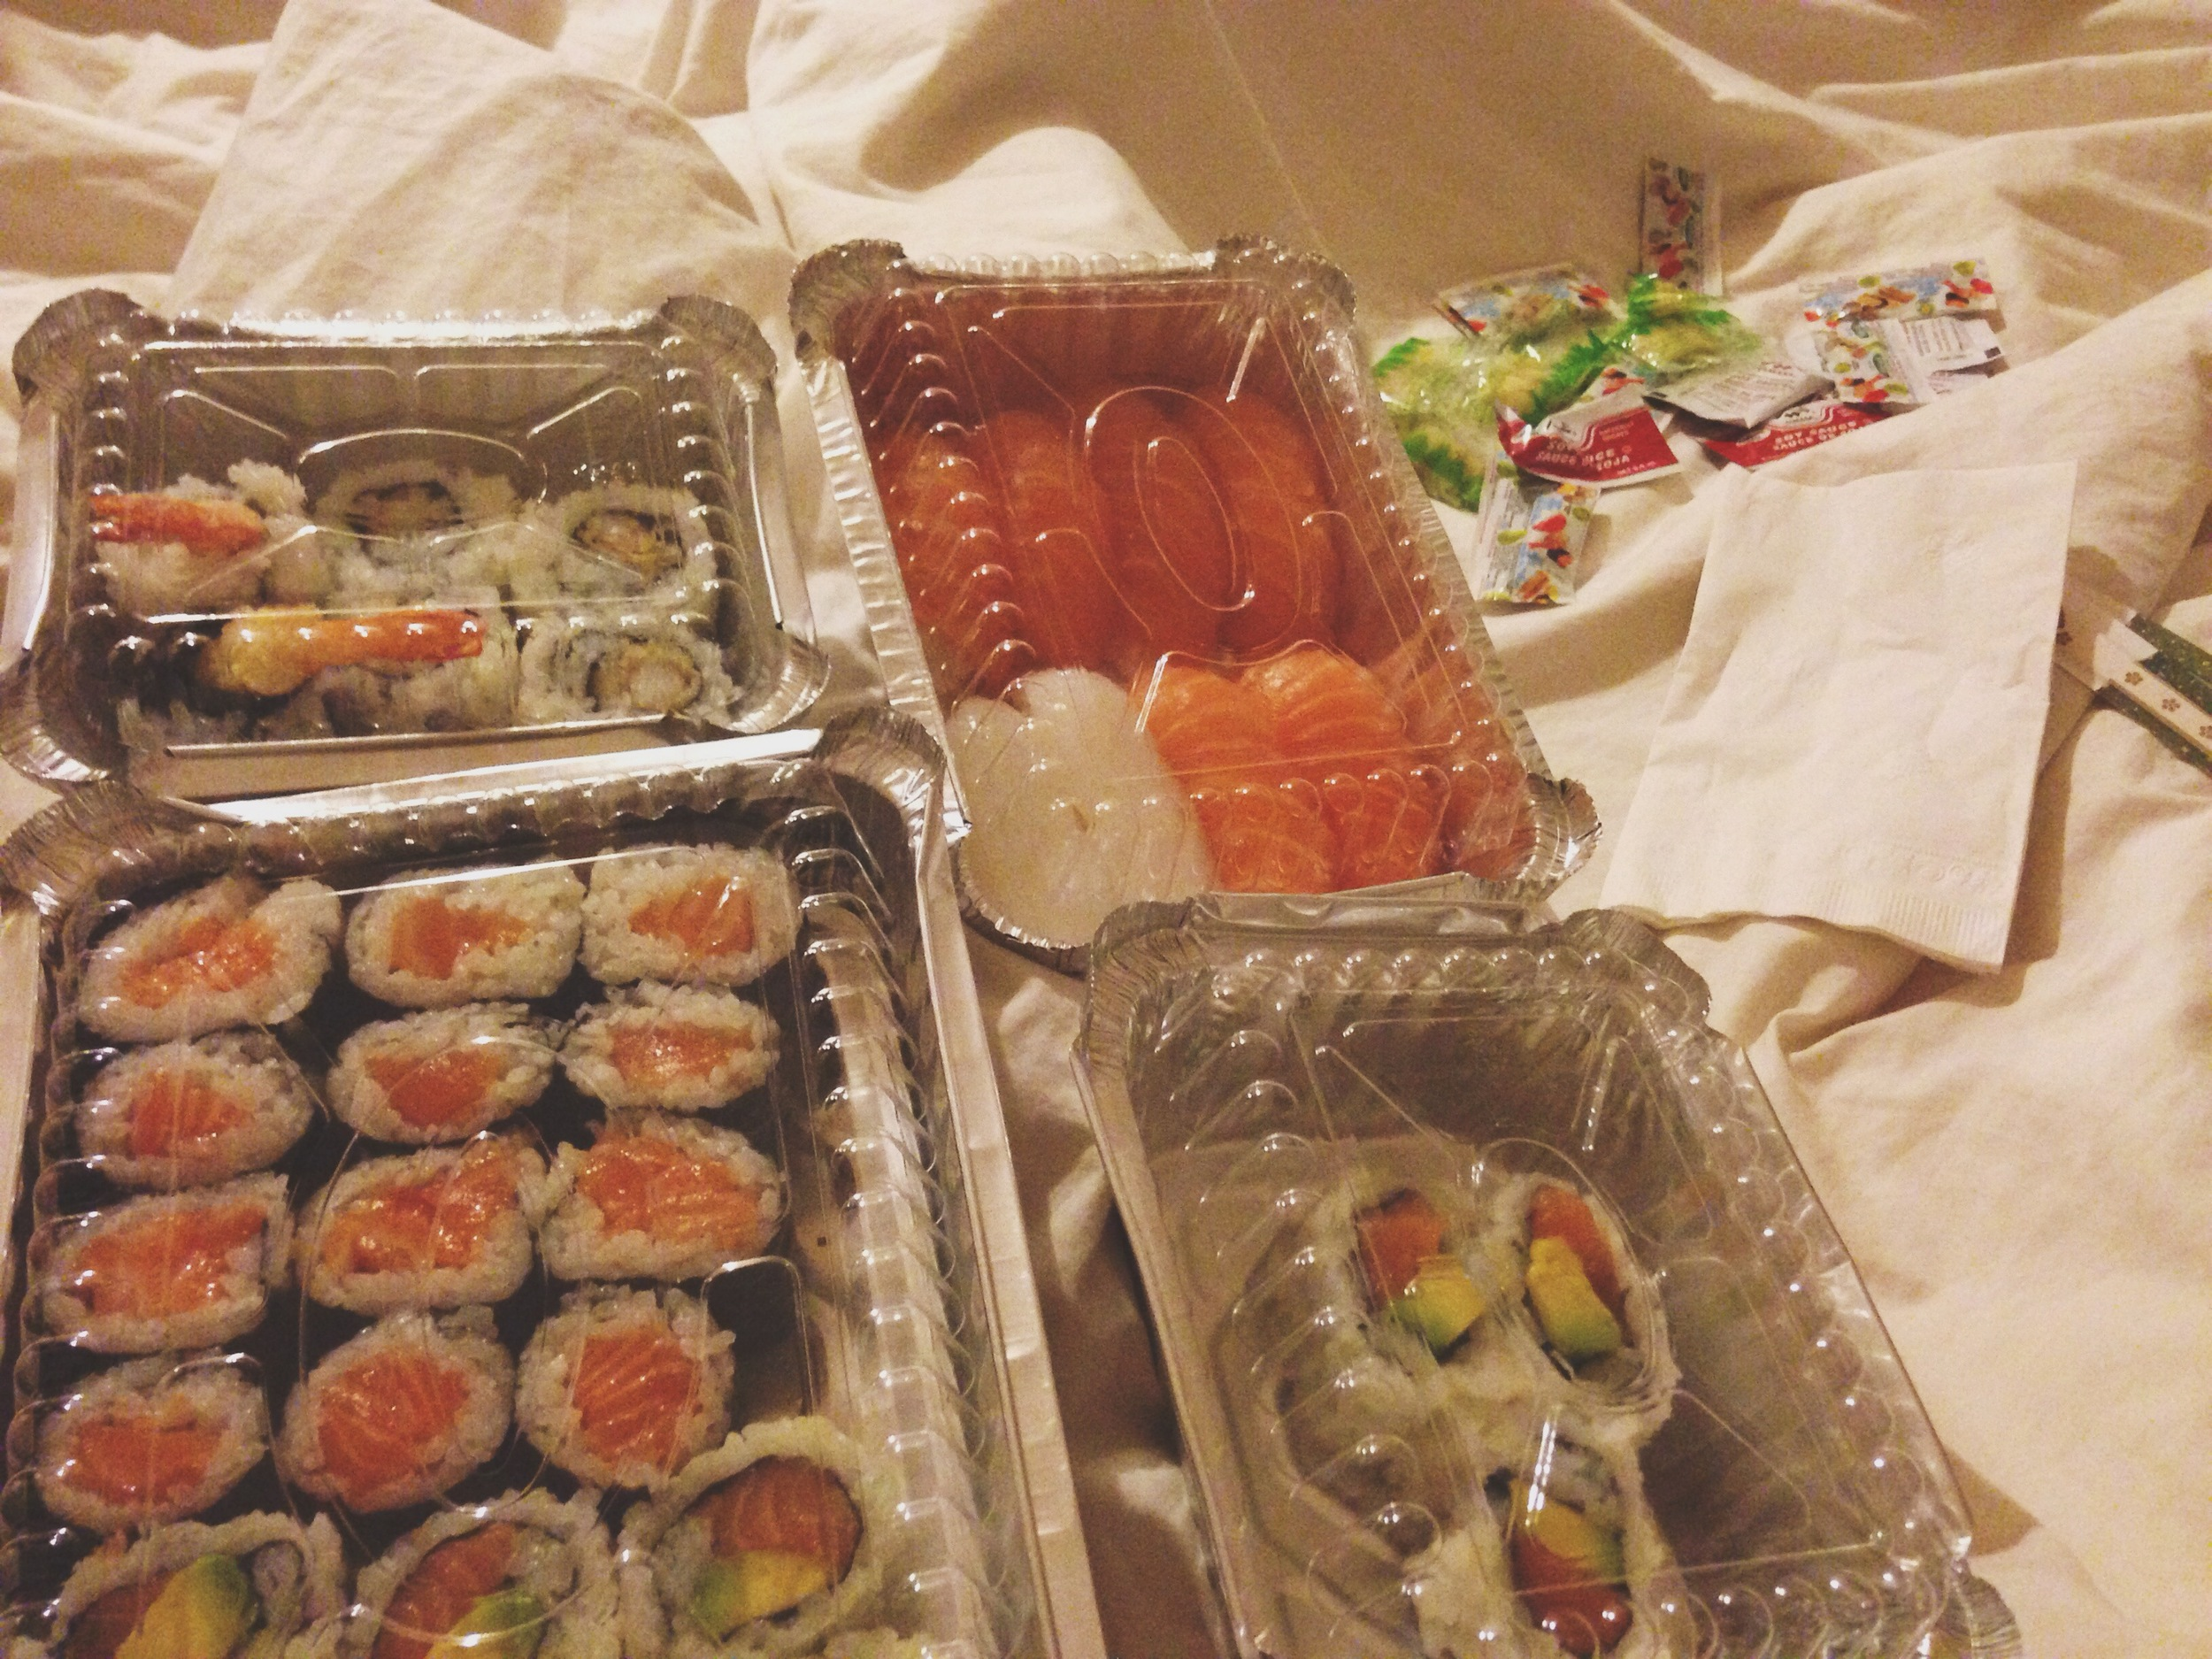 Wednesday was an incredibly long day but my sweet sweet husband brought me home my favorite. Yes, you guessed it. Sushi. And of course I ate it all in bed.